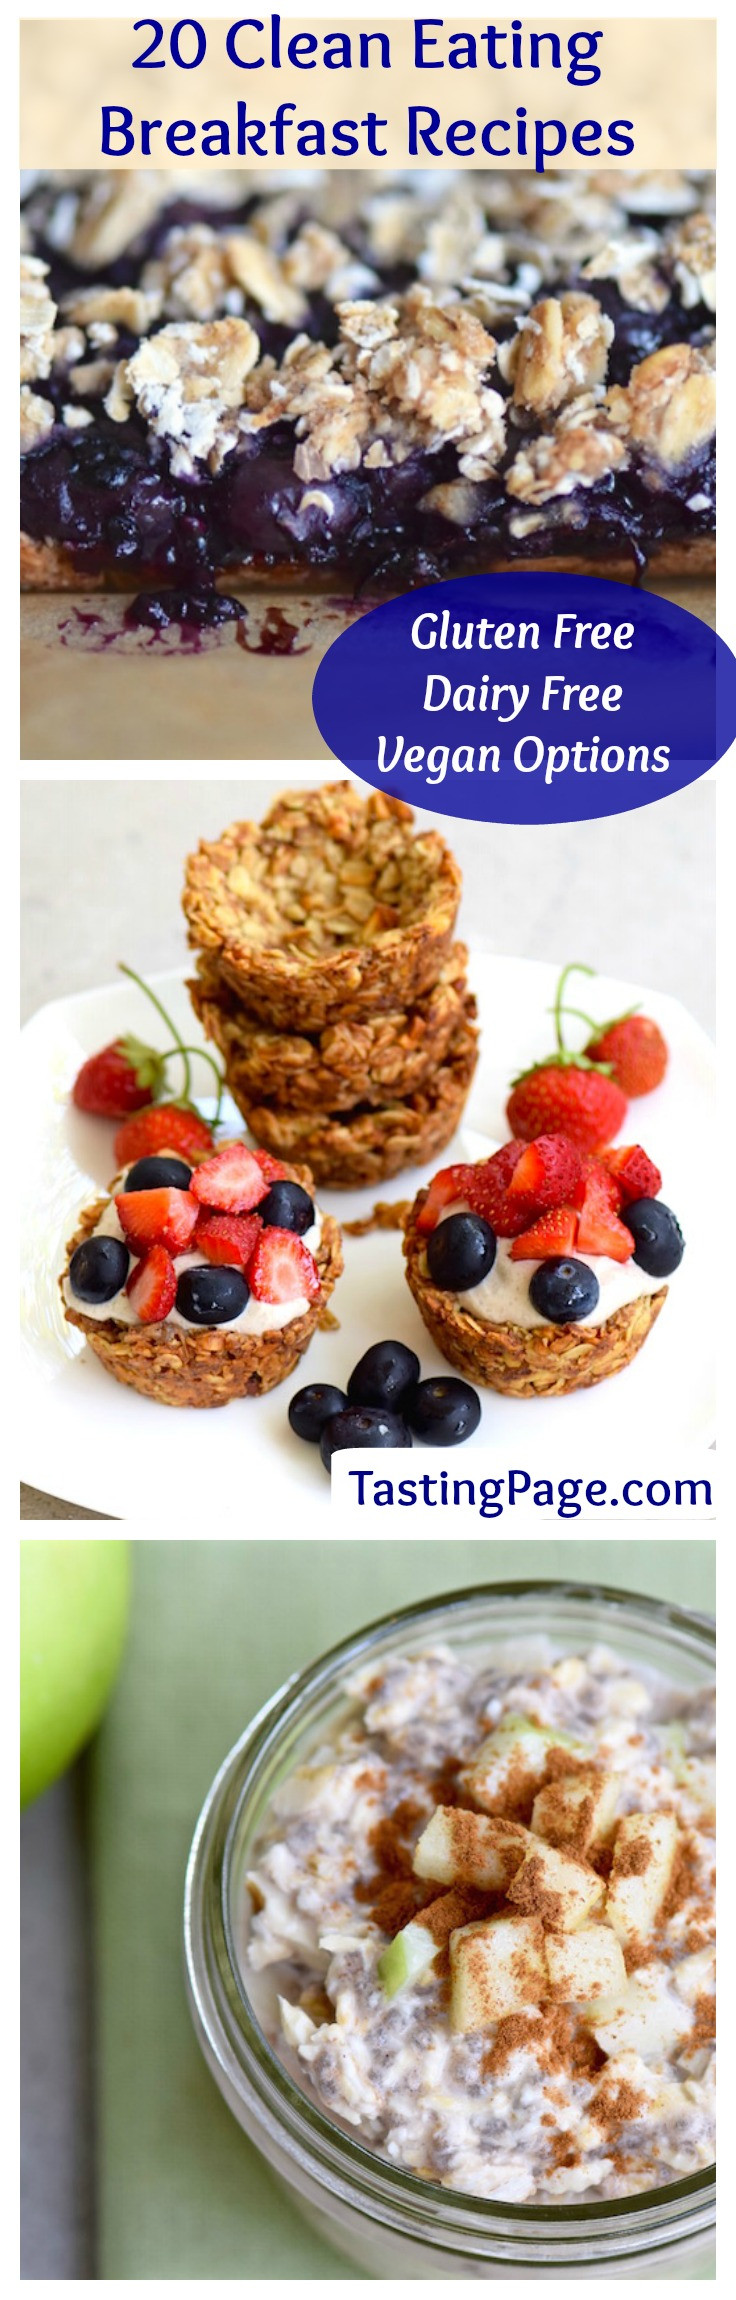 Clean Eating Recipes Breakfast  20 Clean Eating Breakfast Recipes — Tasting Page